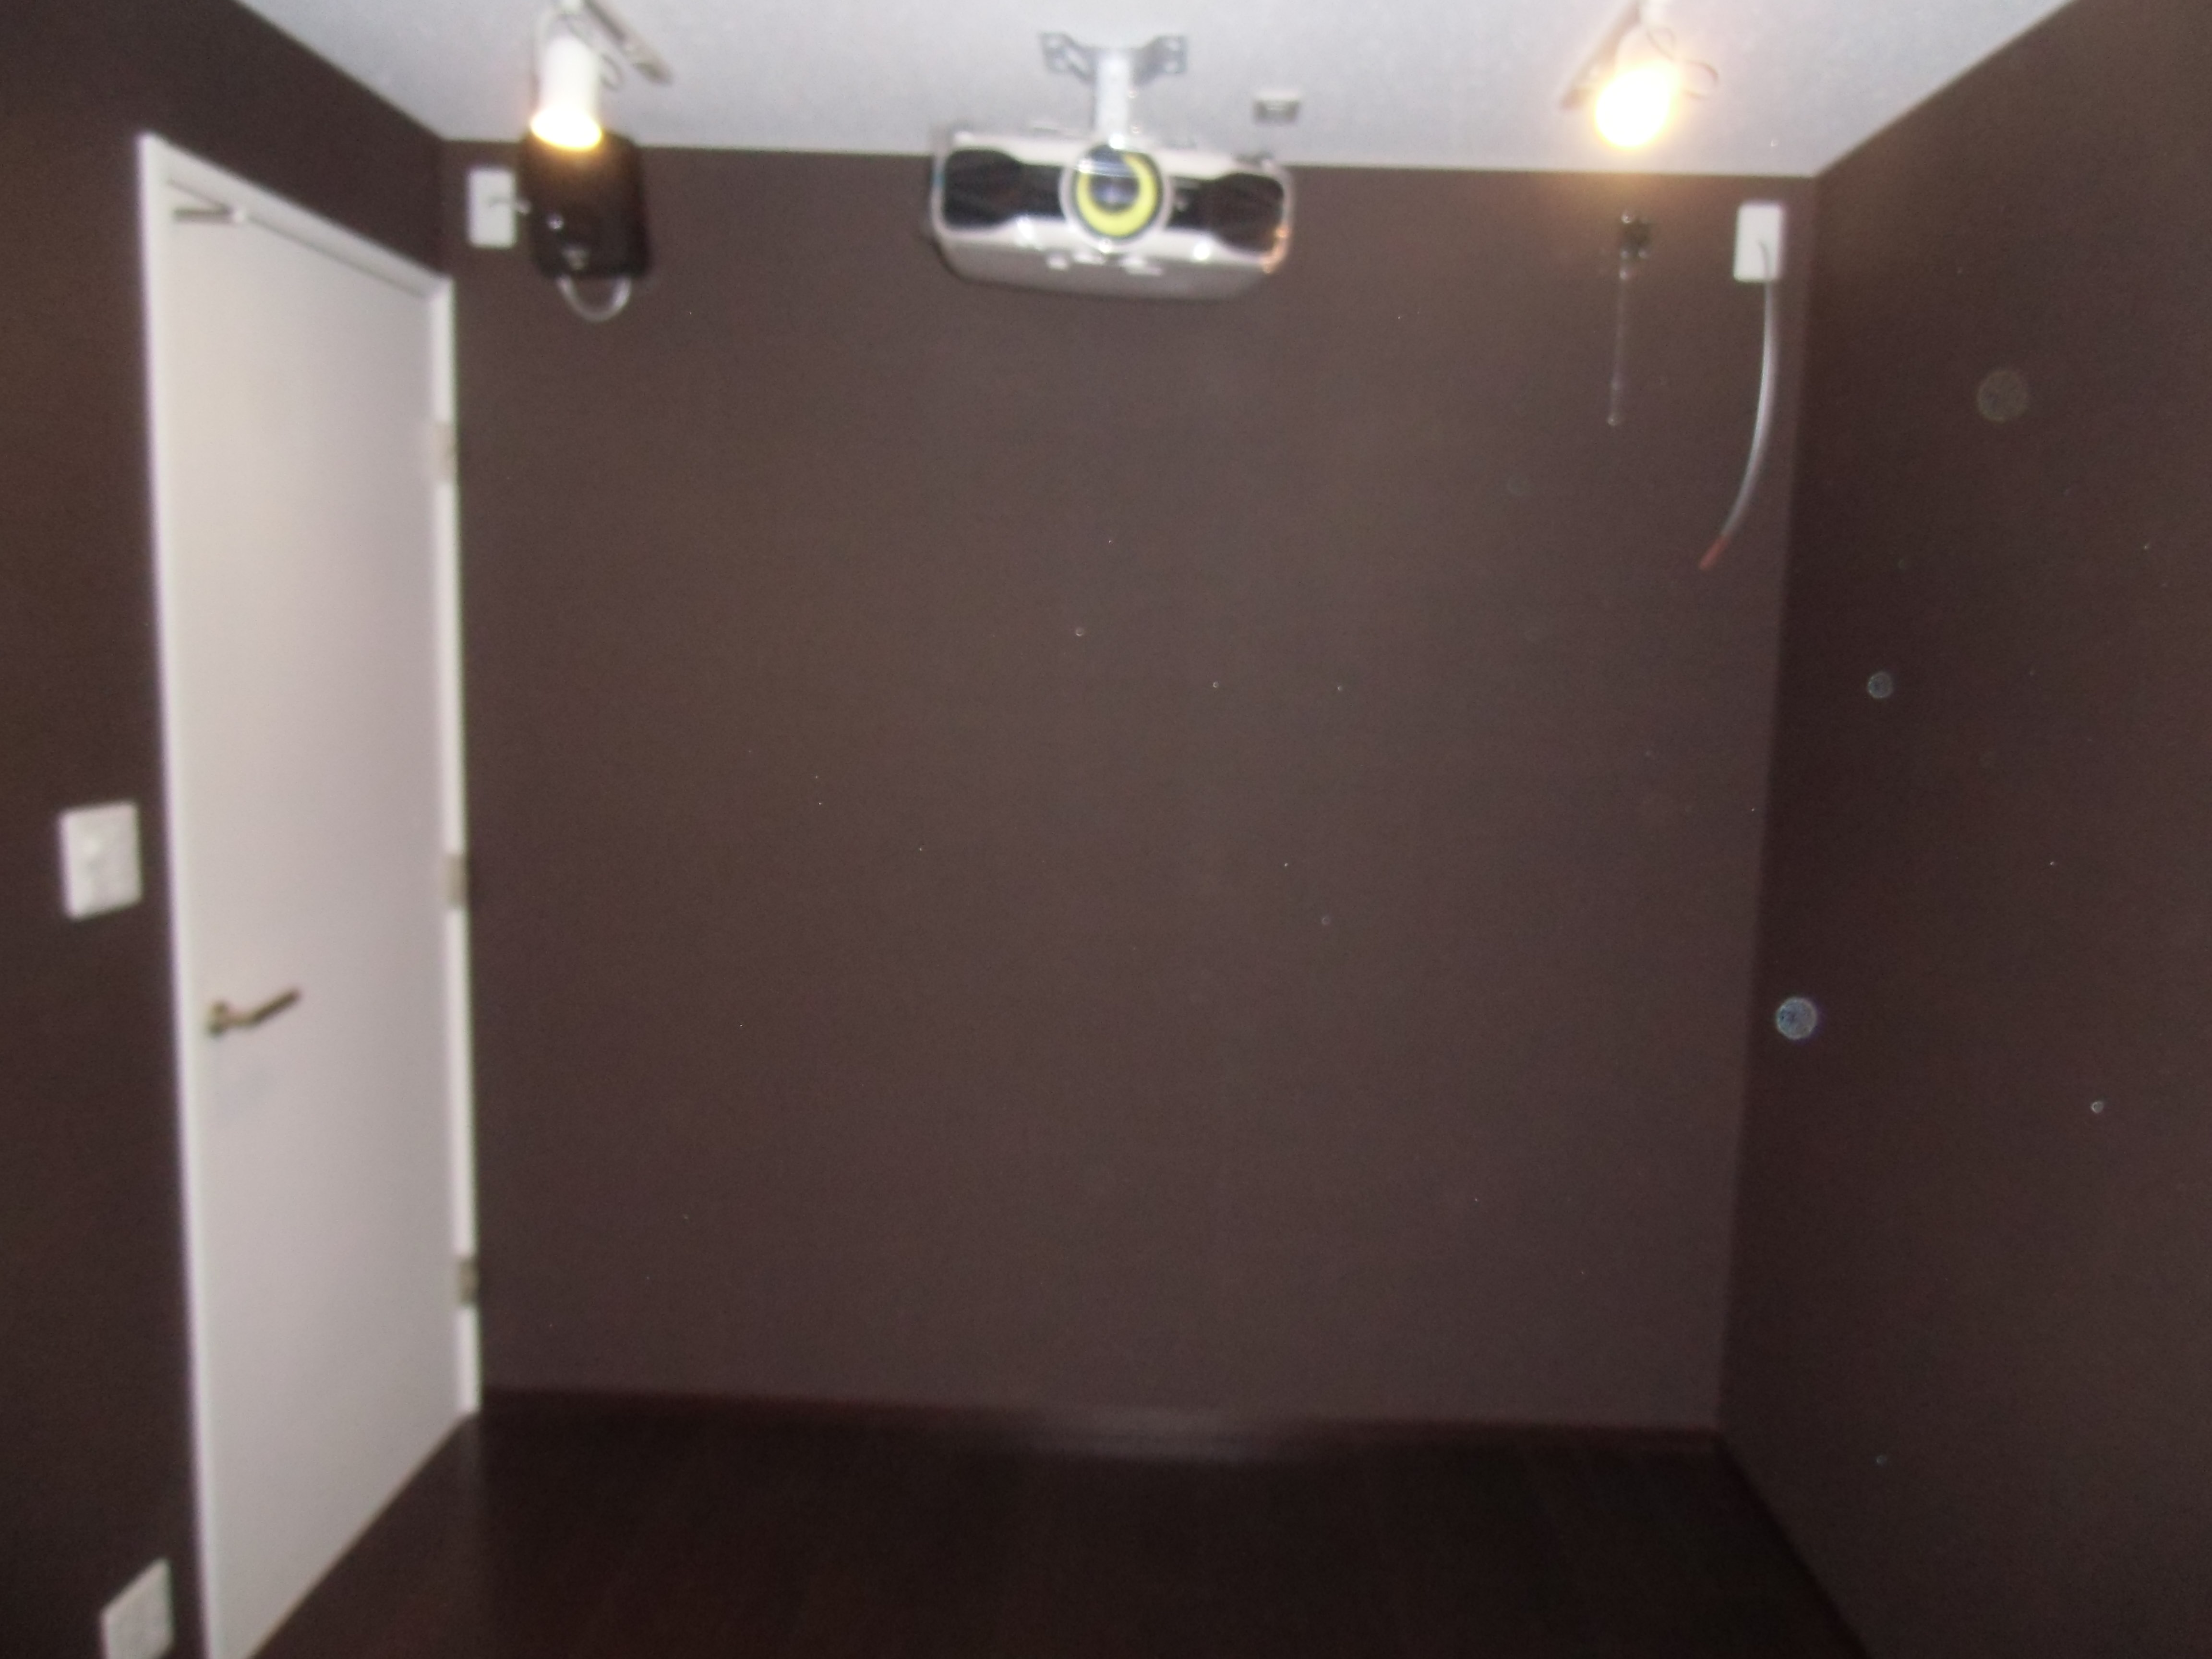 Precautions for soundproof room construction for home theater